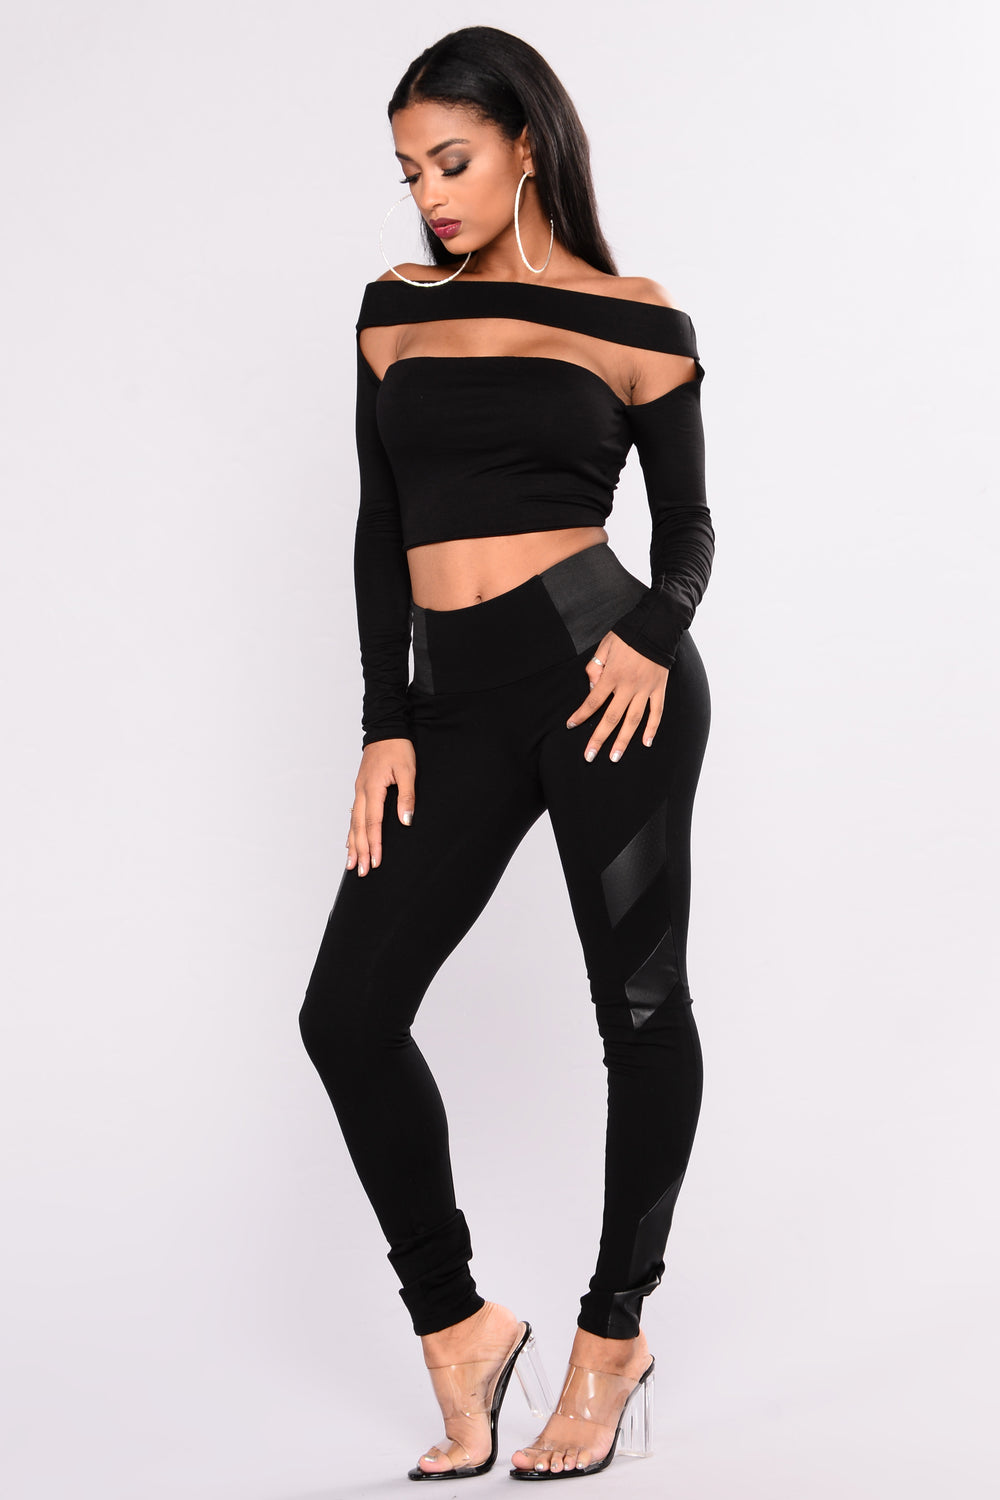 Gotta Love Me Crop Top - Black